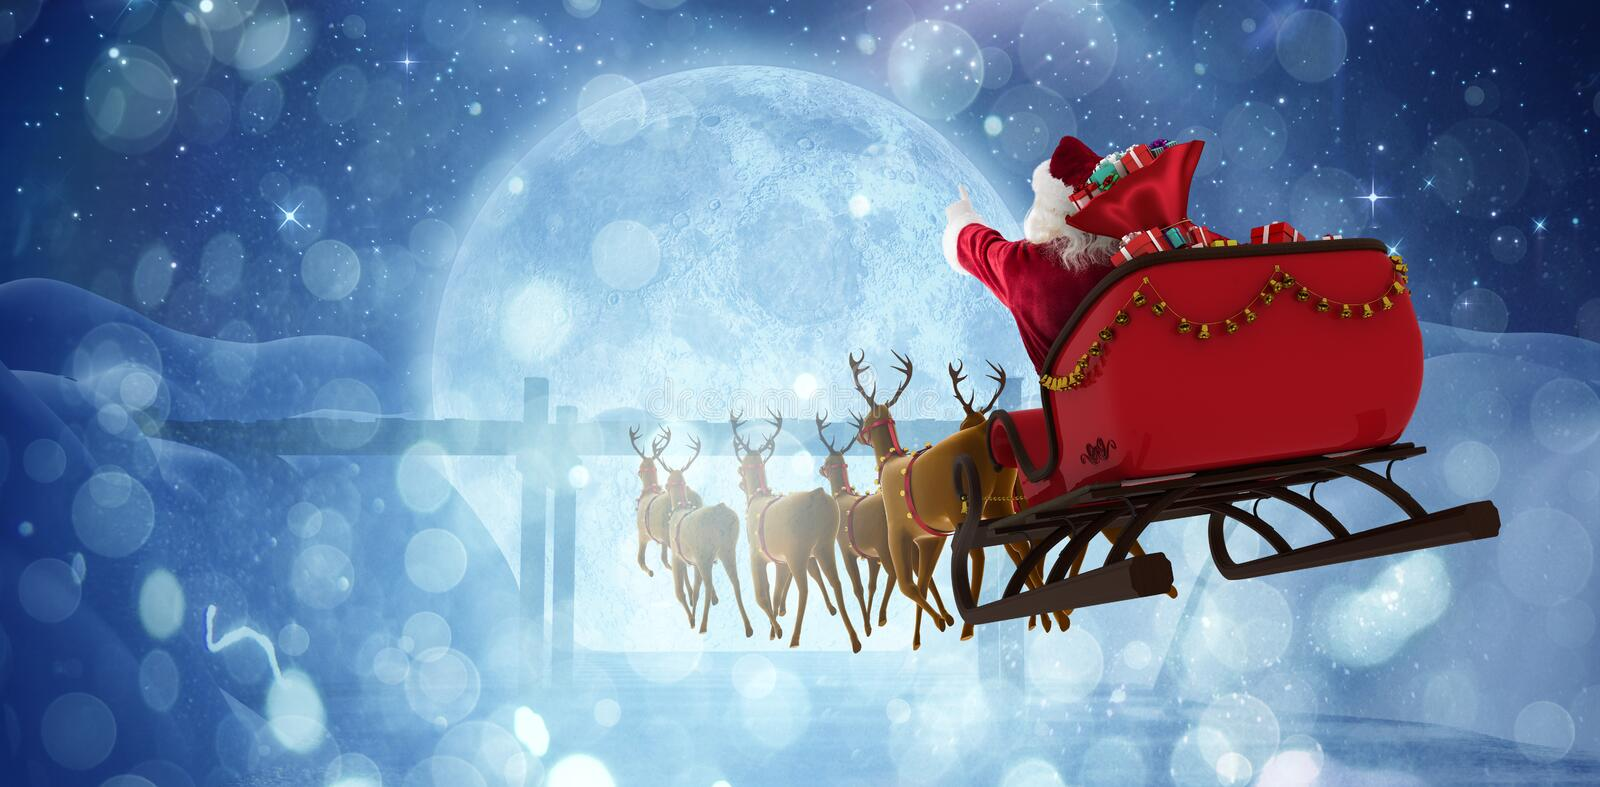 Composite image of santa claus riding on sleigh with gift box stock illustration